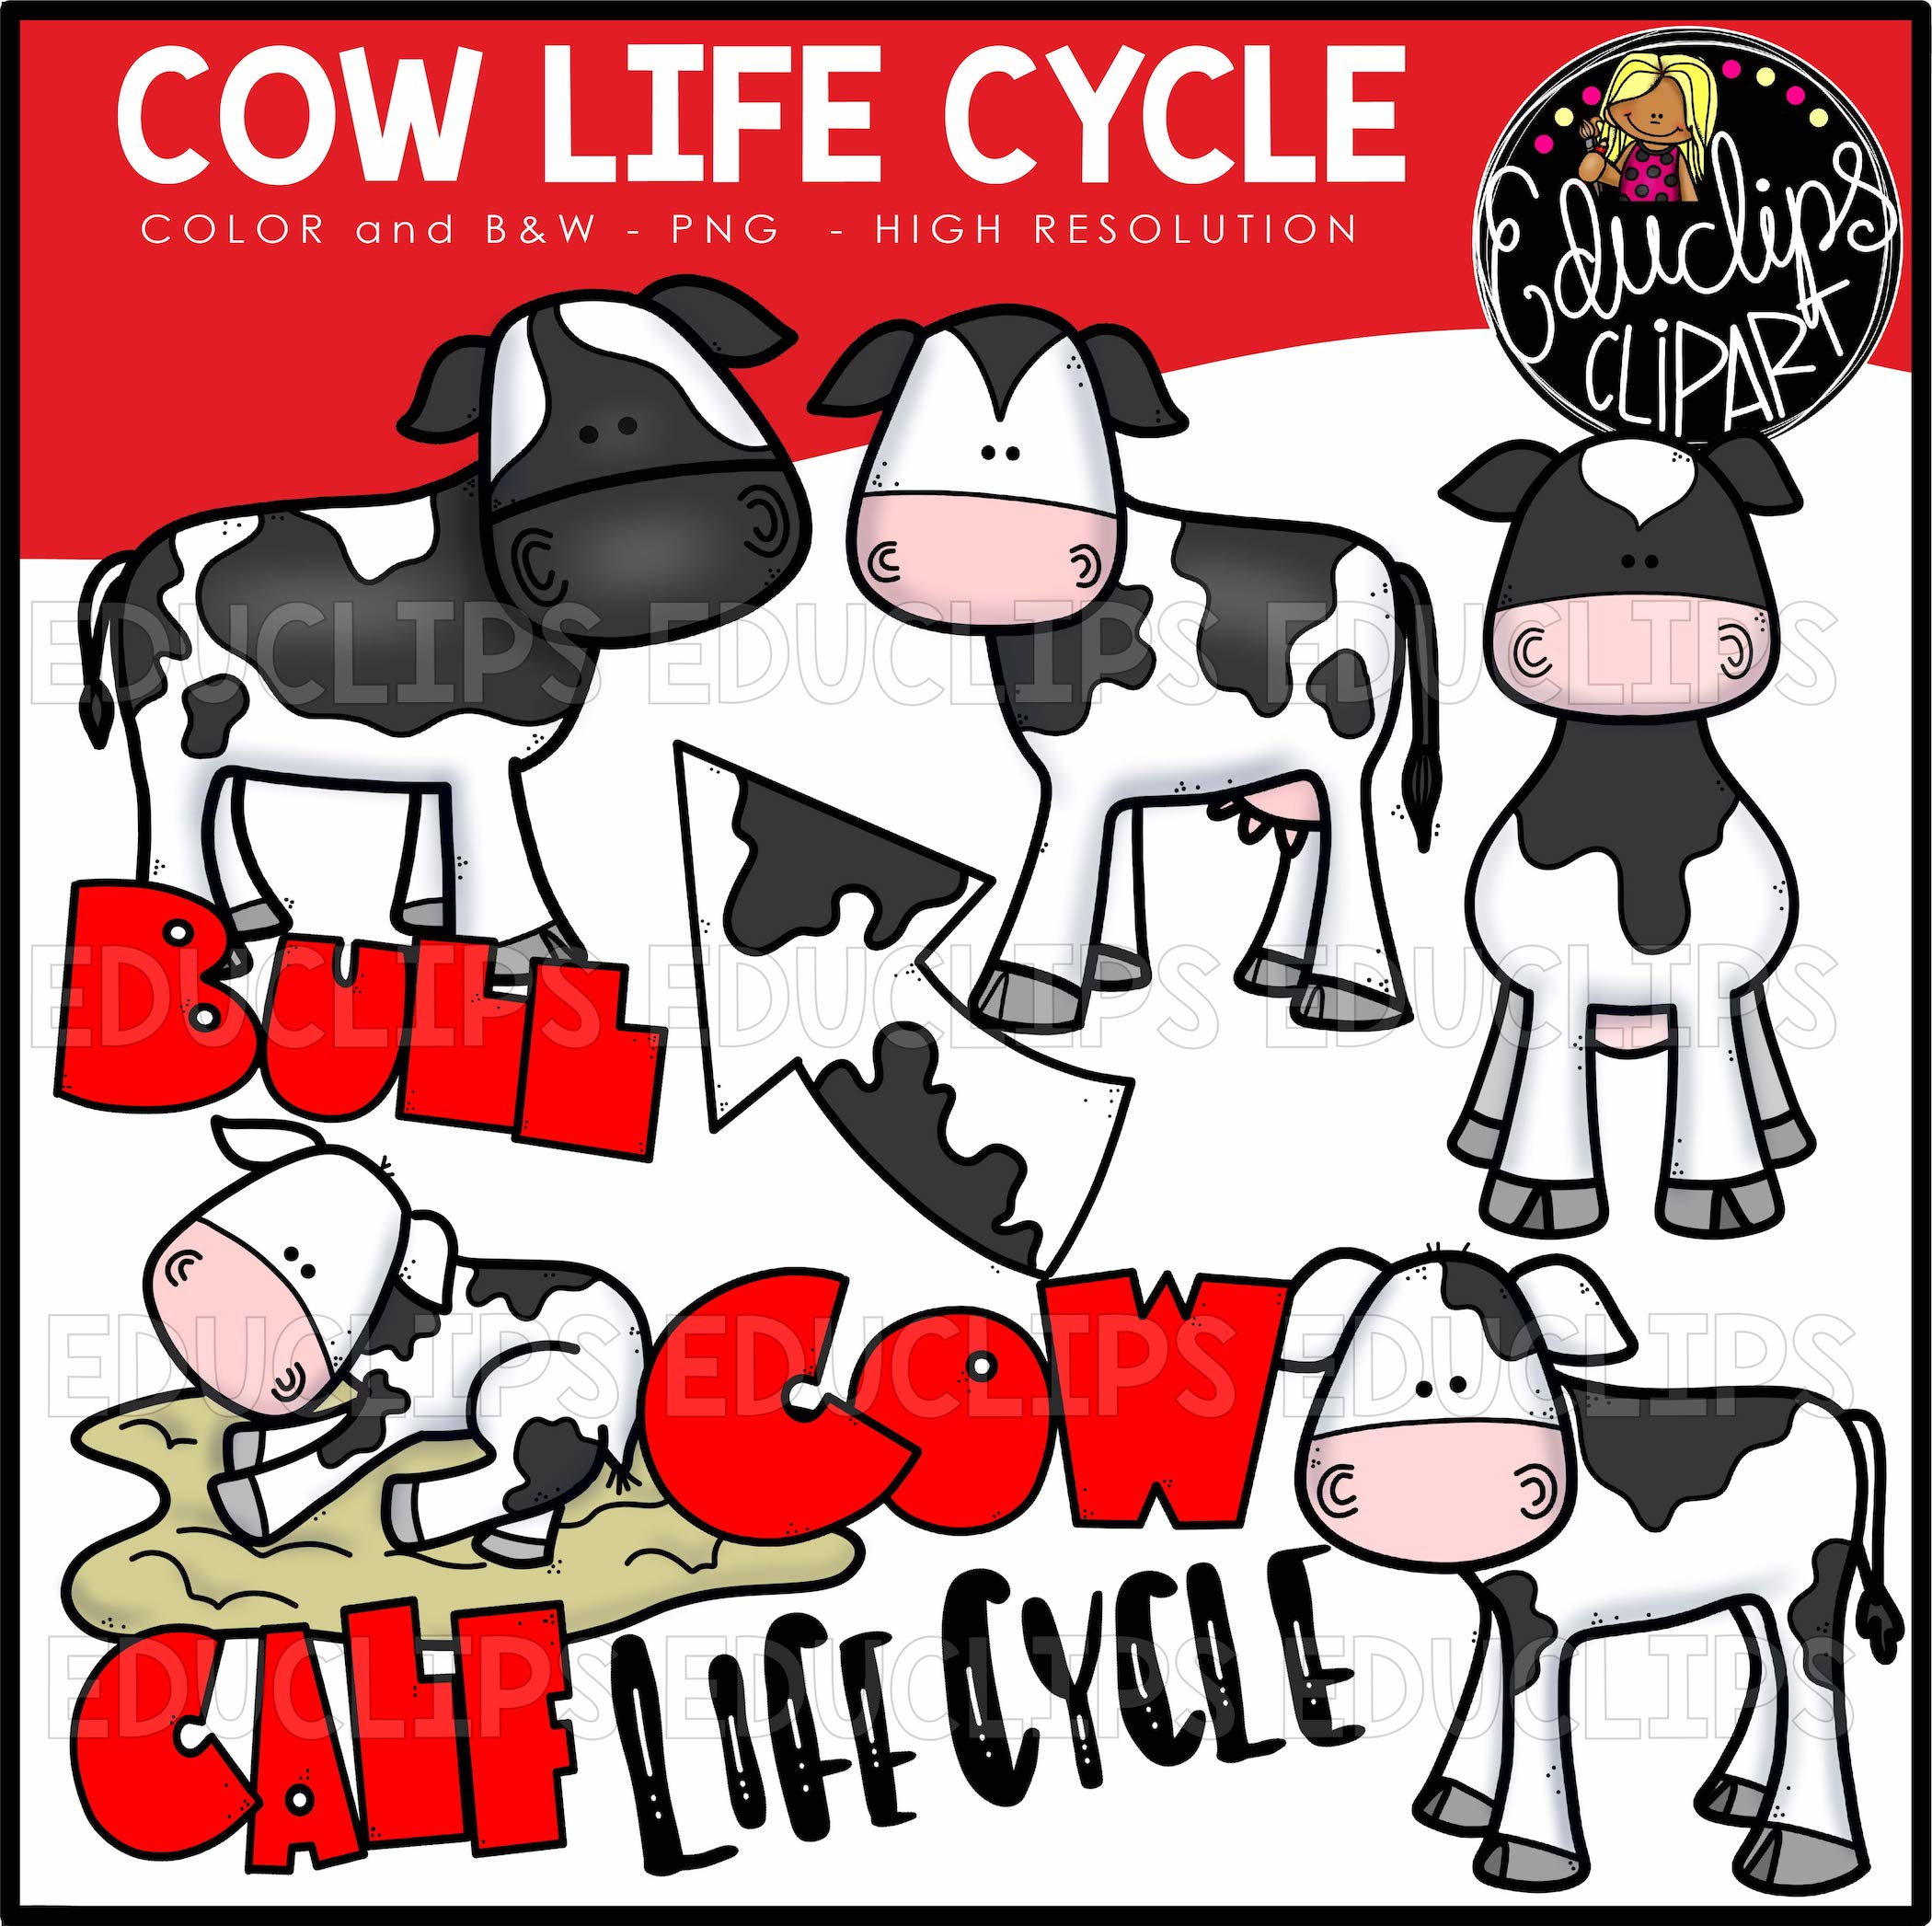 Cow Life Cycle Clip Art Bundle (Color and B&W) - Welcome to Educlips ...